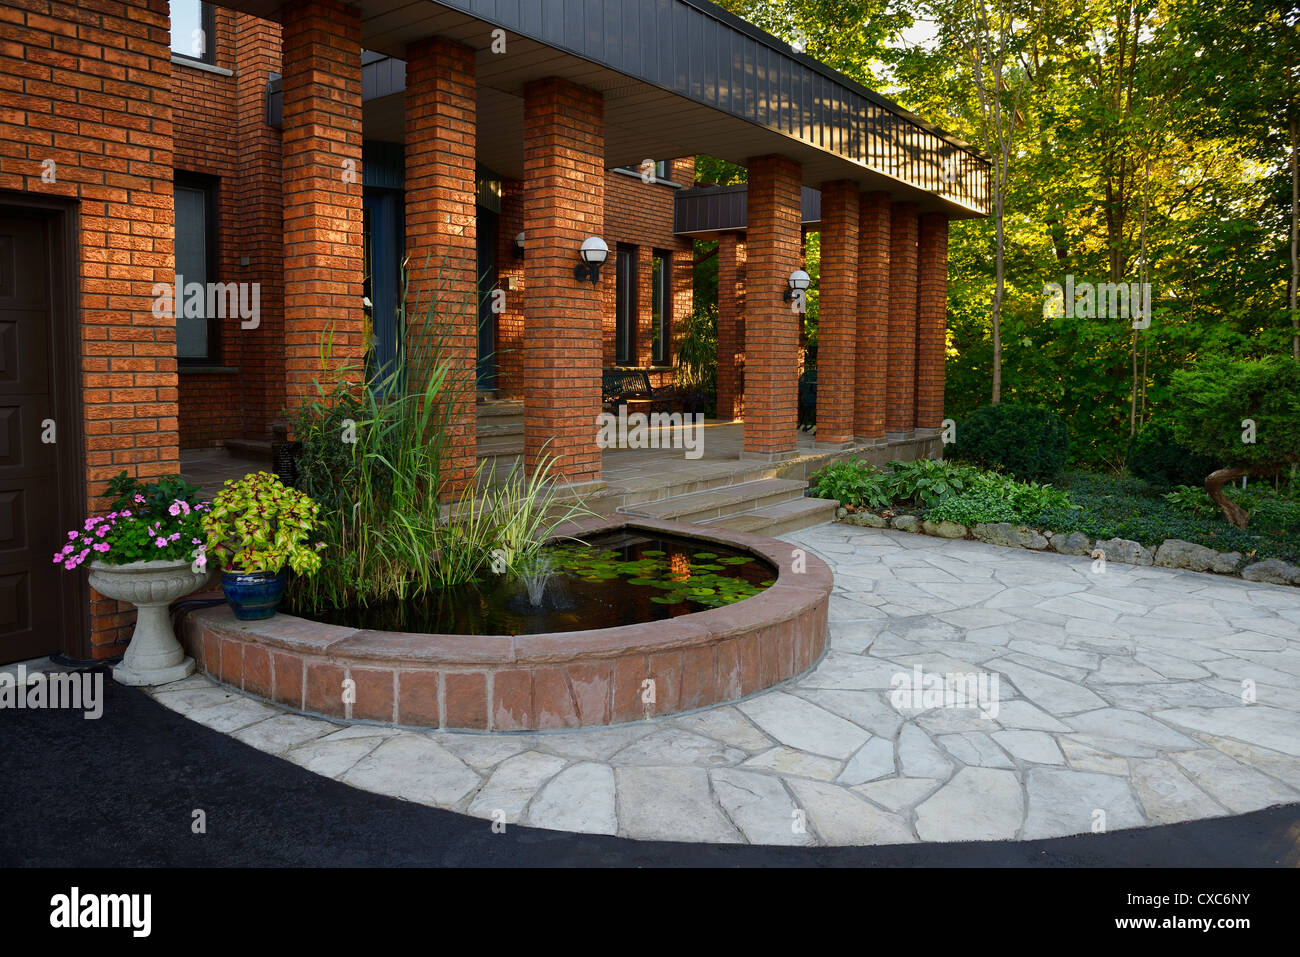 front entrance with pond and stone veranda on red brick house with